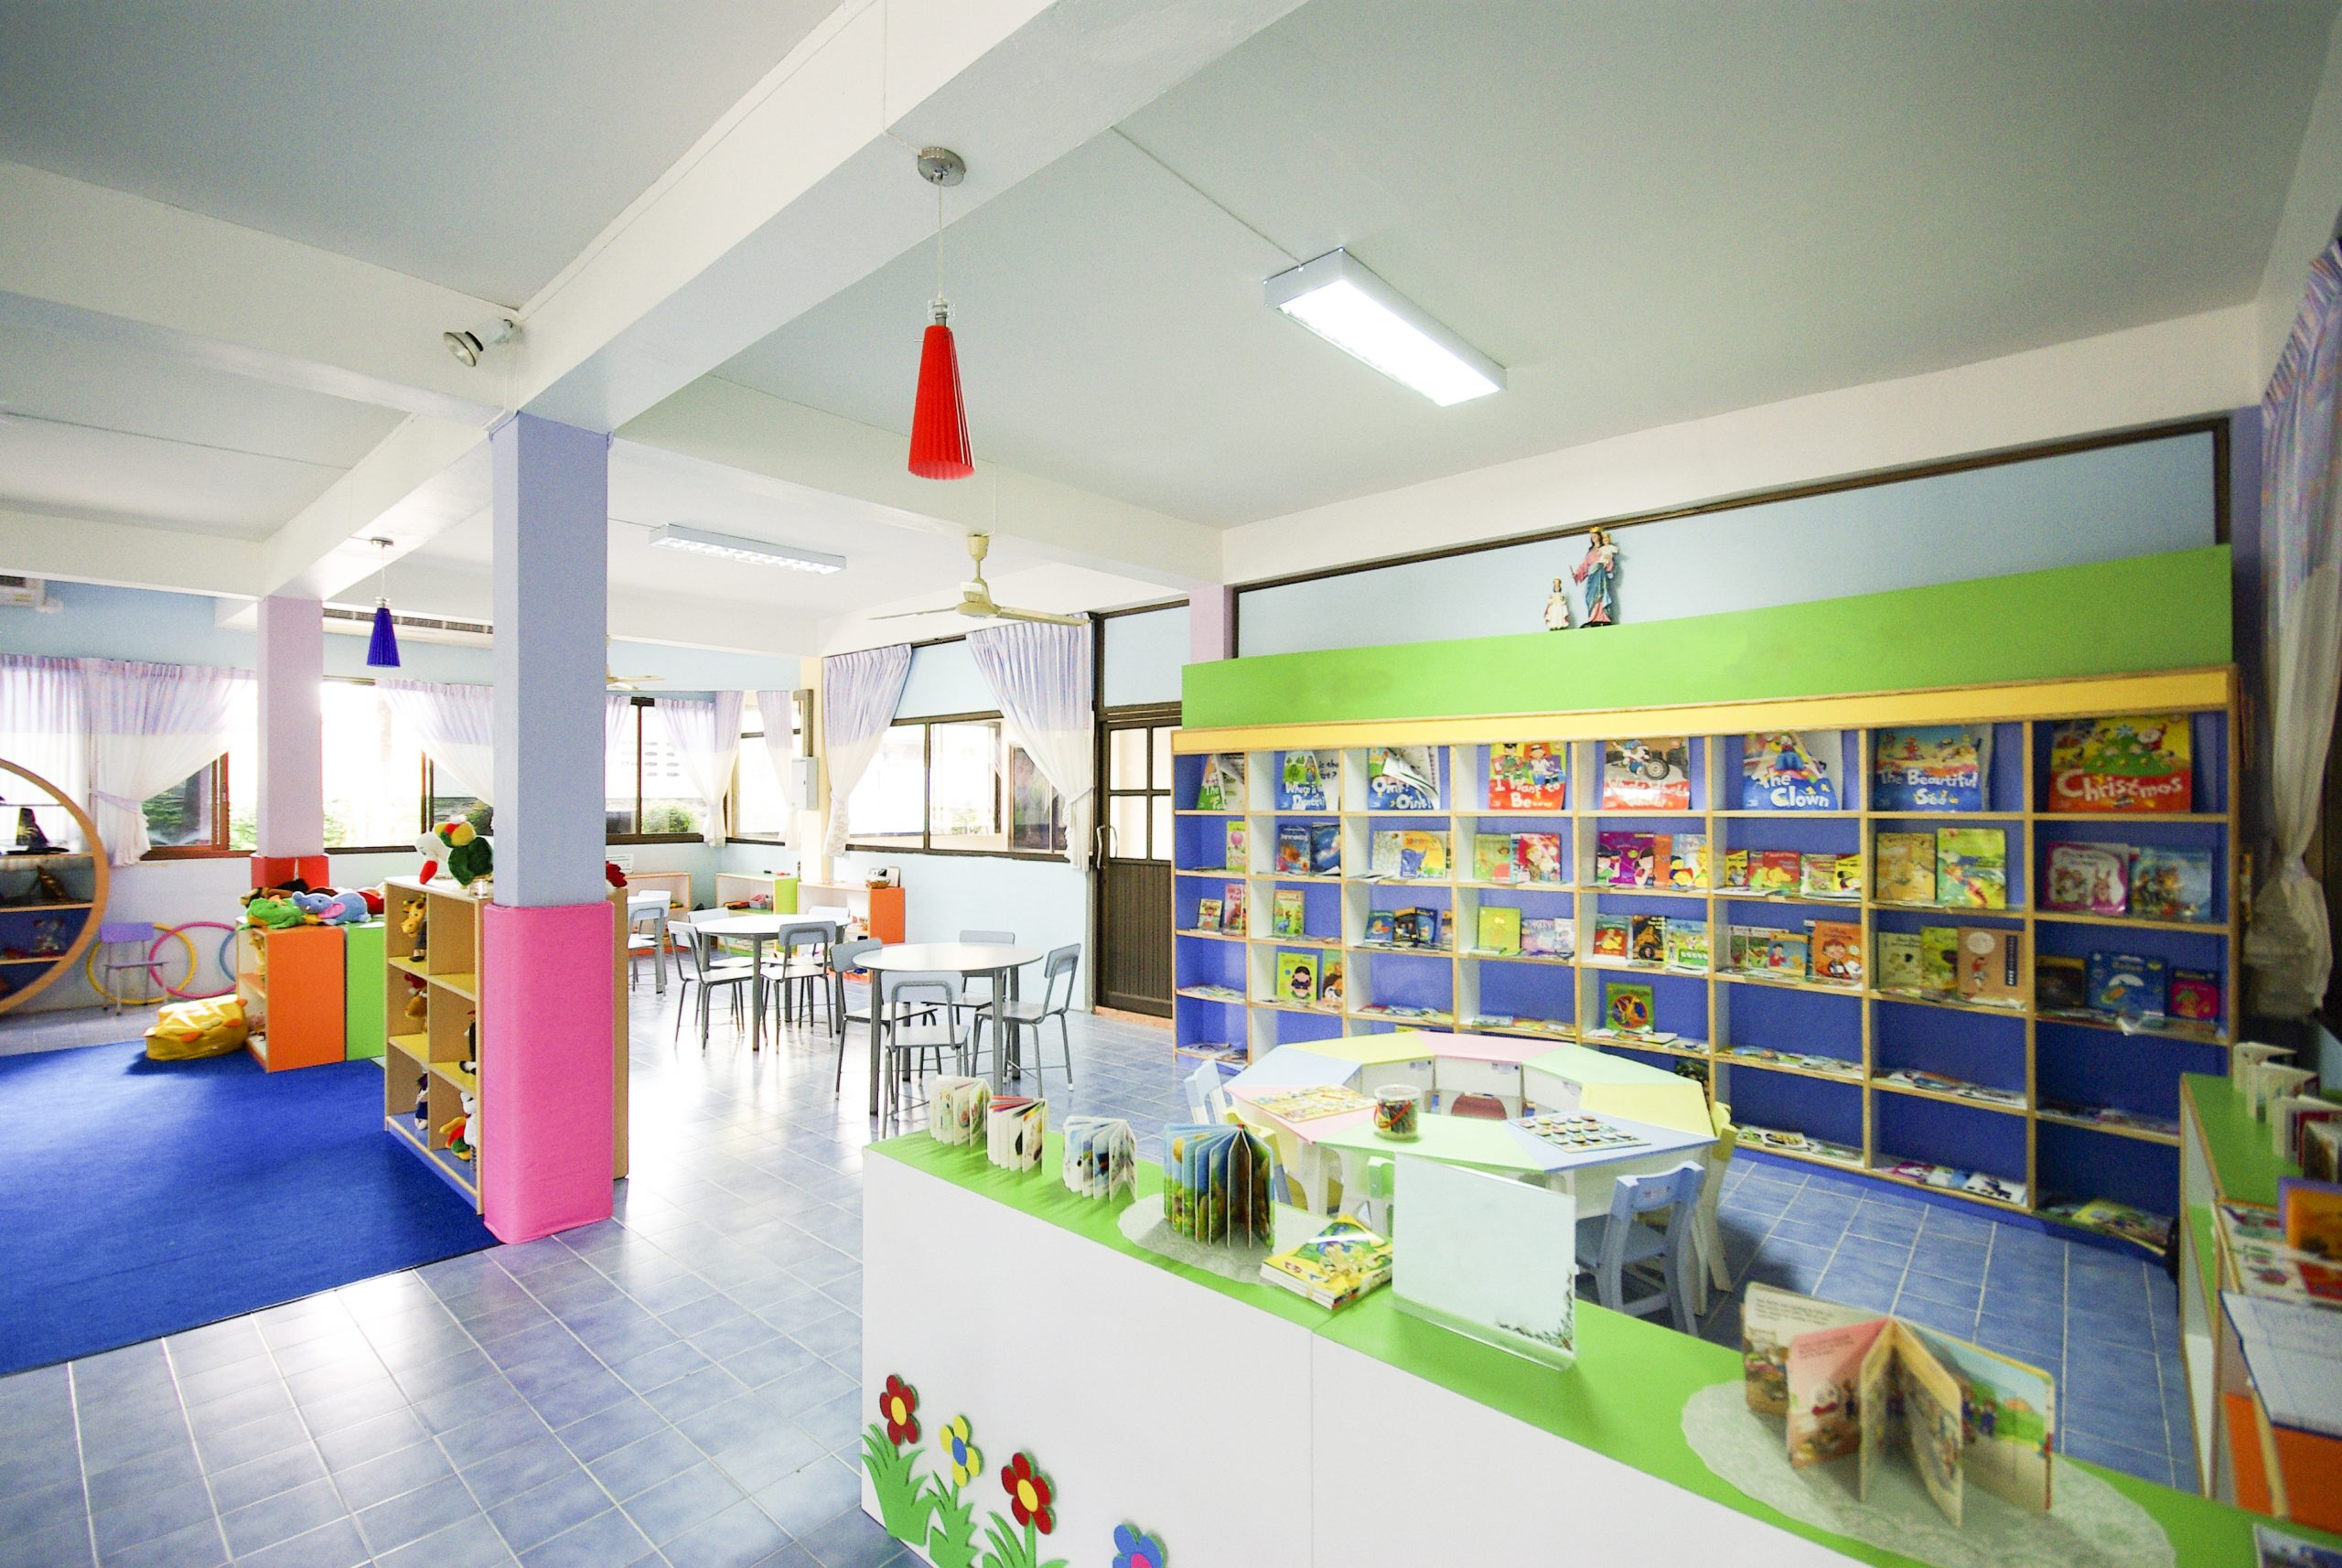 5 Steps to Starting Your Own Daycare